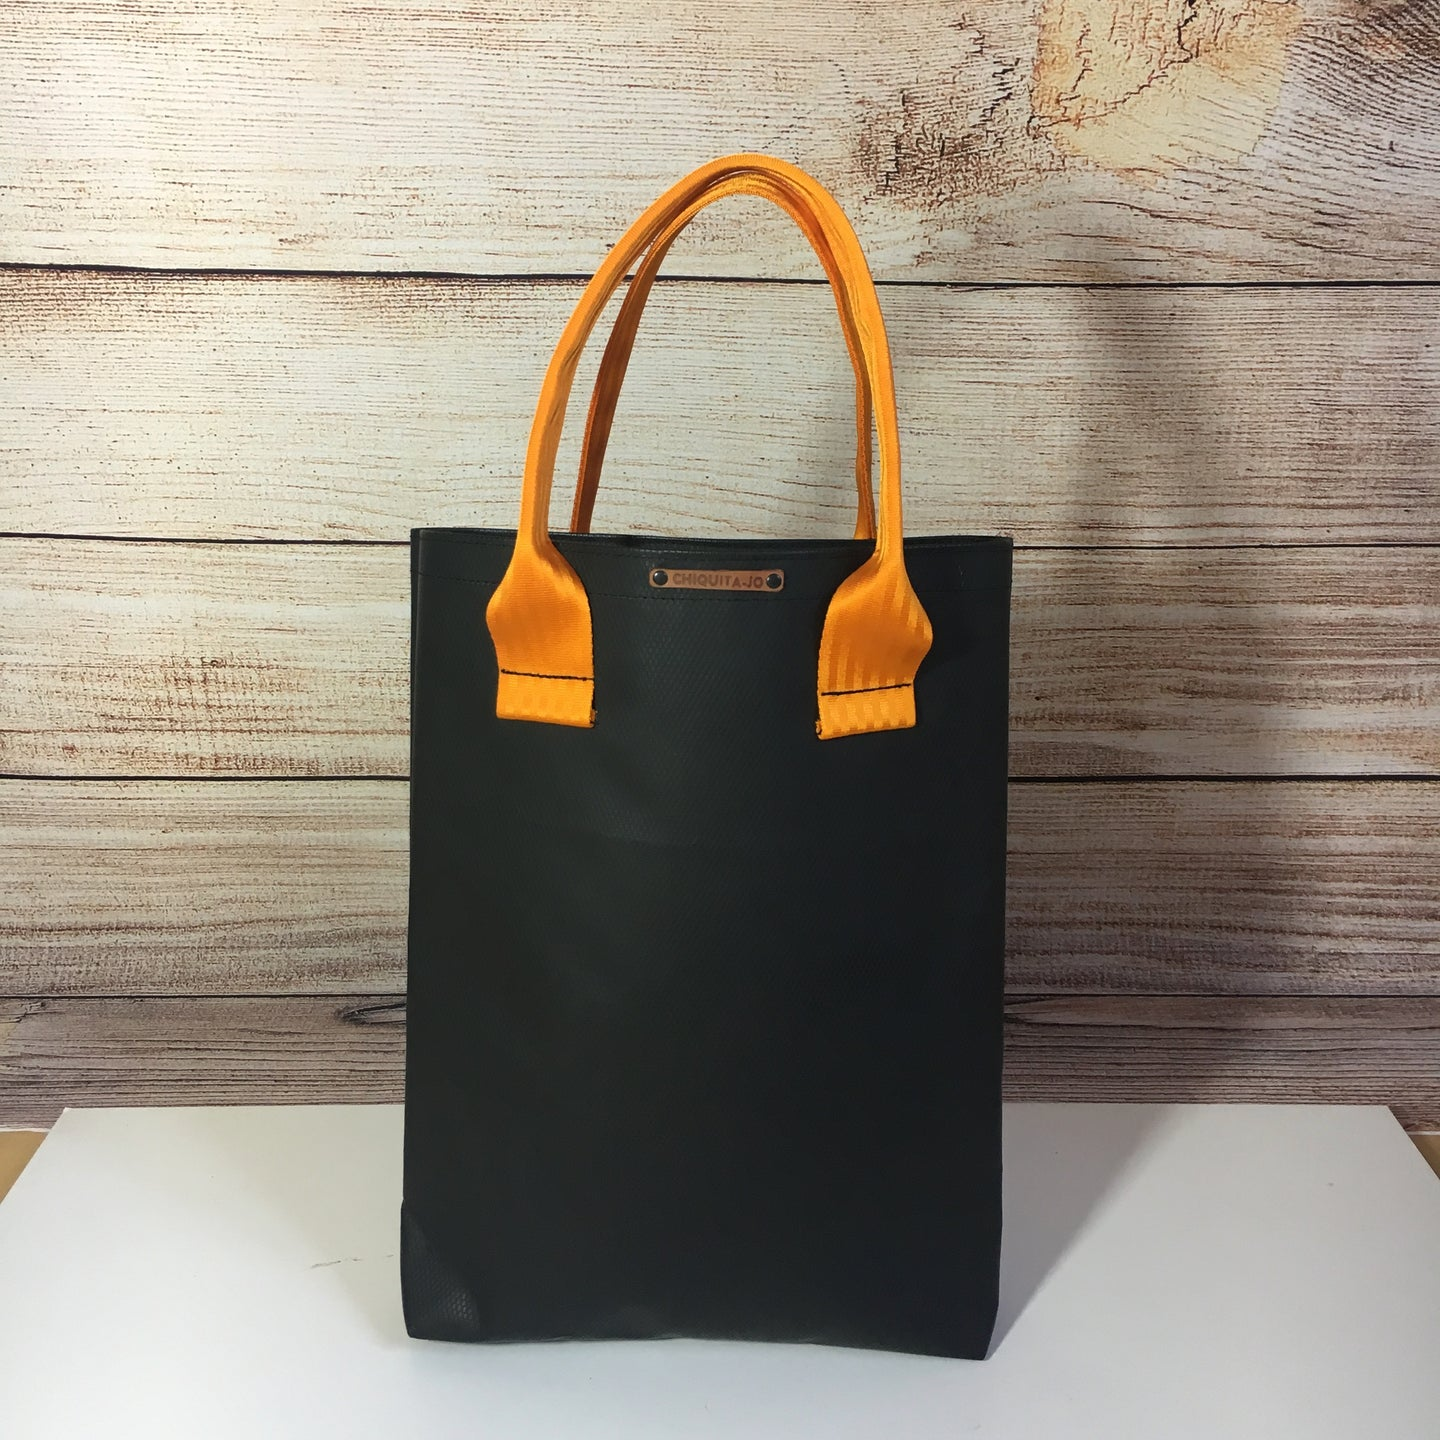 Shopper aus LKW-Plane CARBON/Orange - Ohne Leder